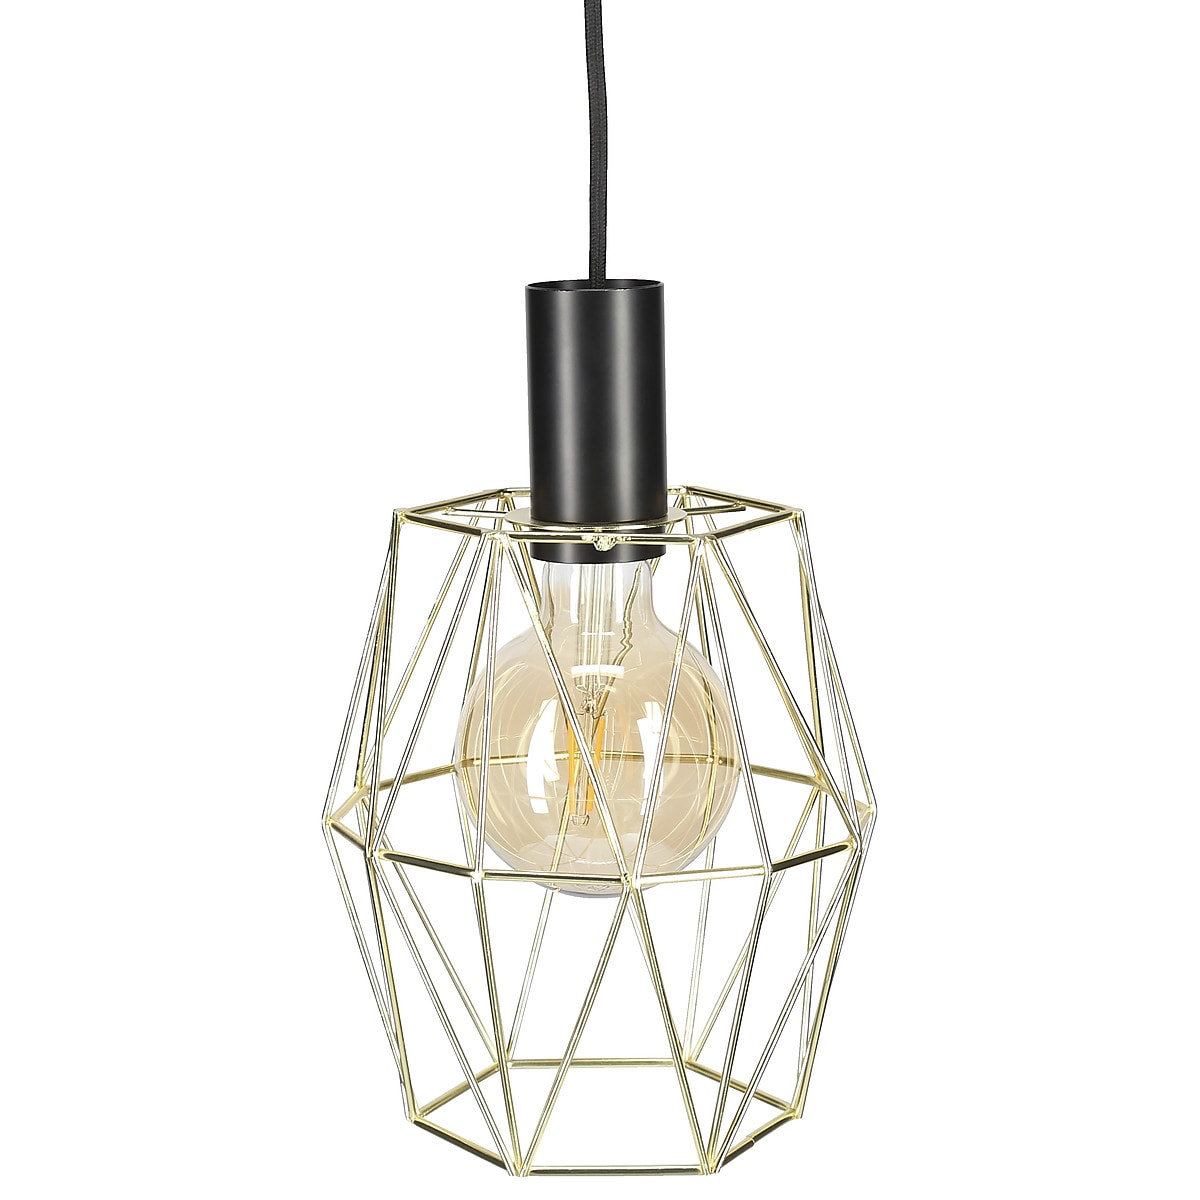 Northlight Cage Lampshade